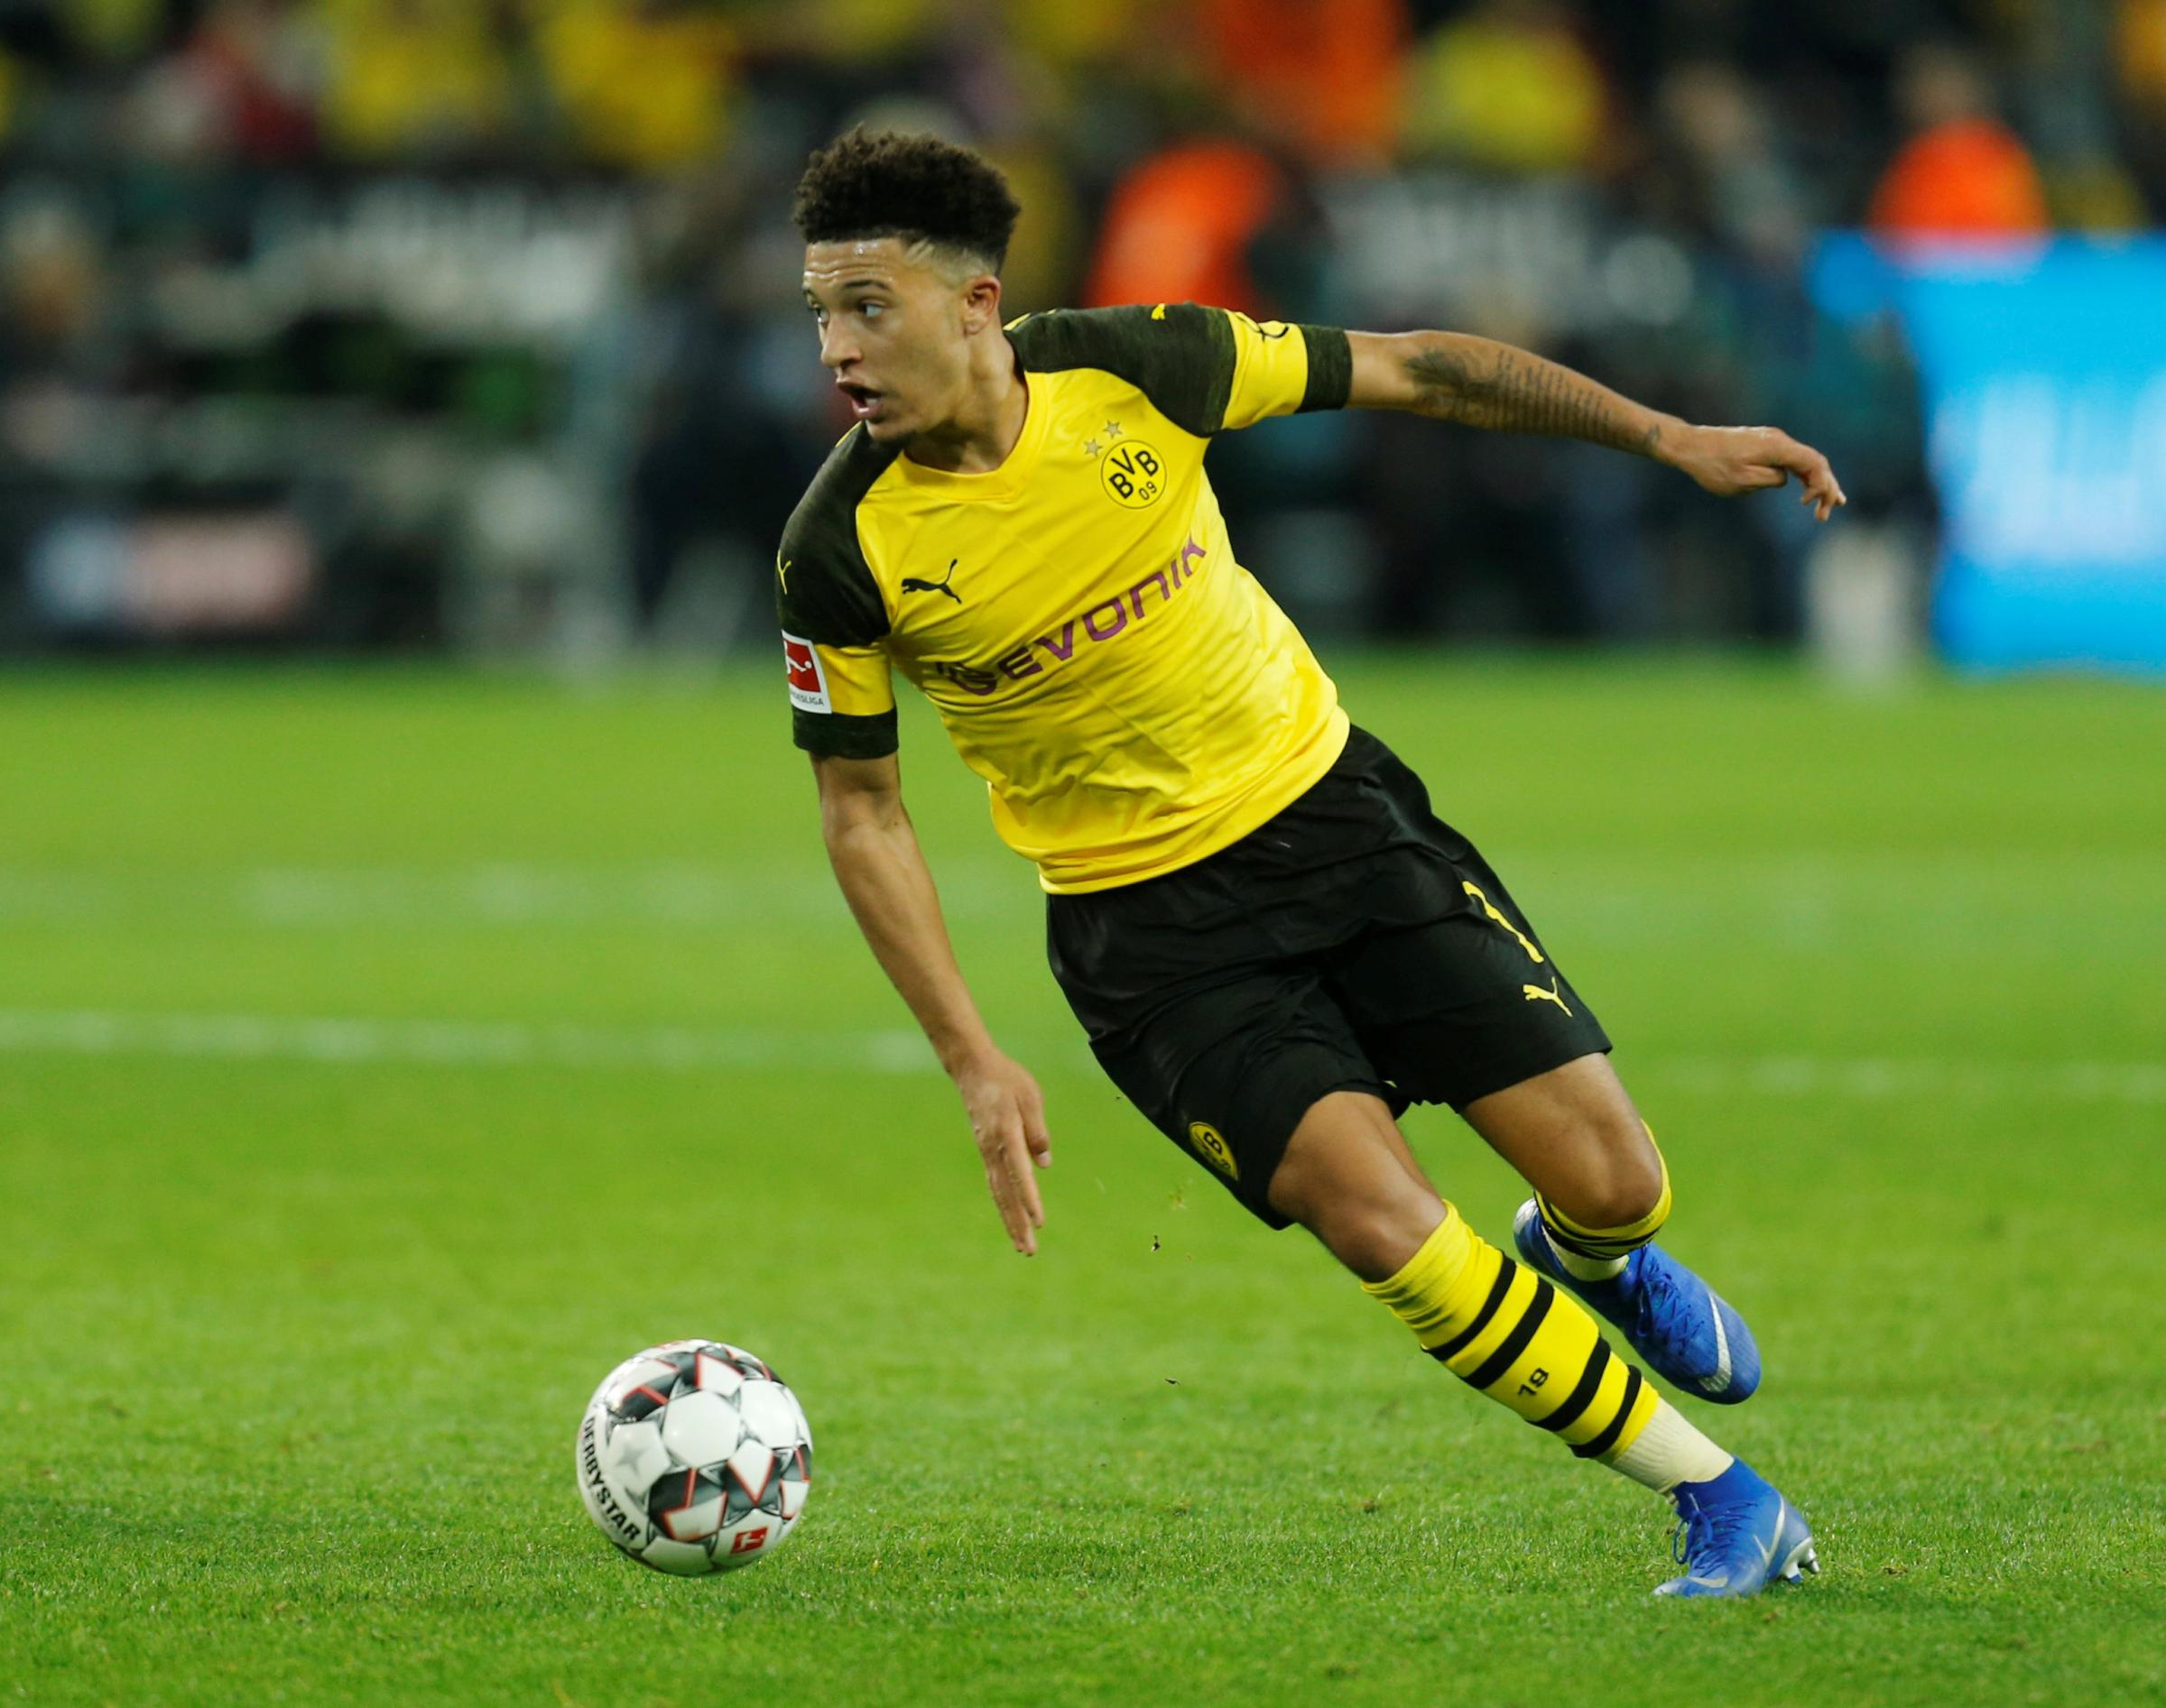 Jadon Sancho is set to come up against some of his England squad mates in the tie. Picture: Action Images